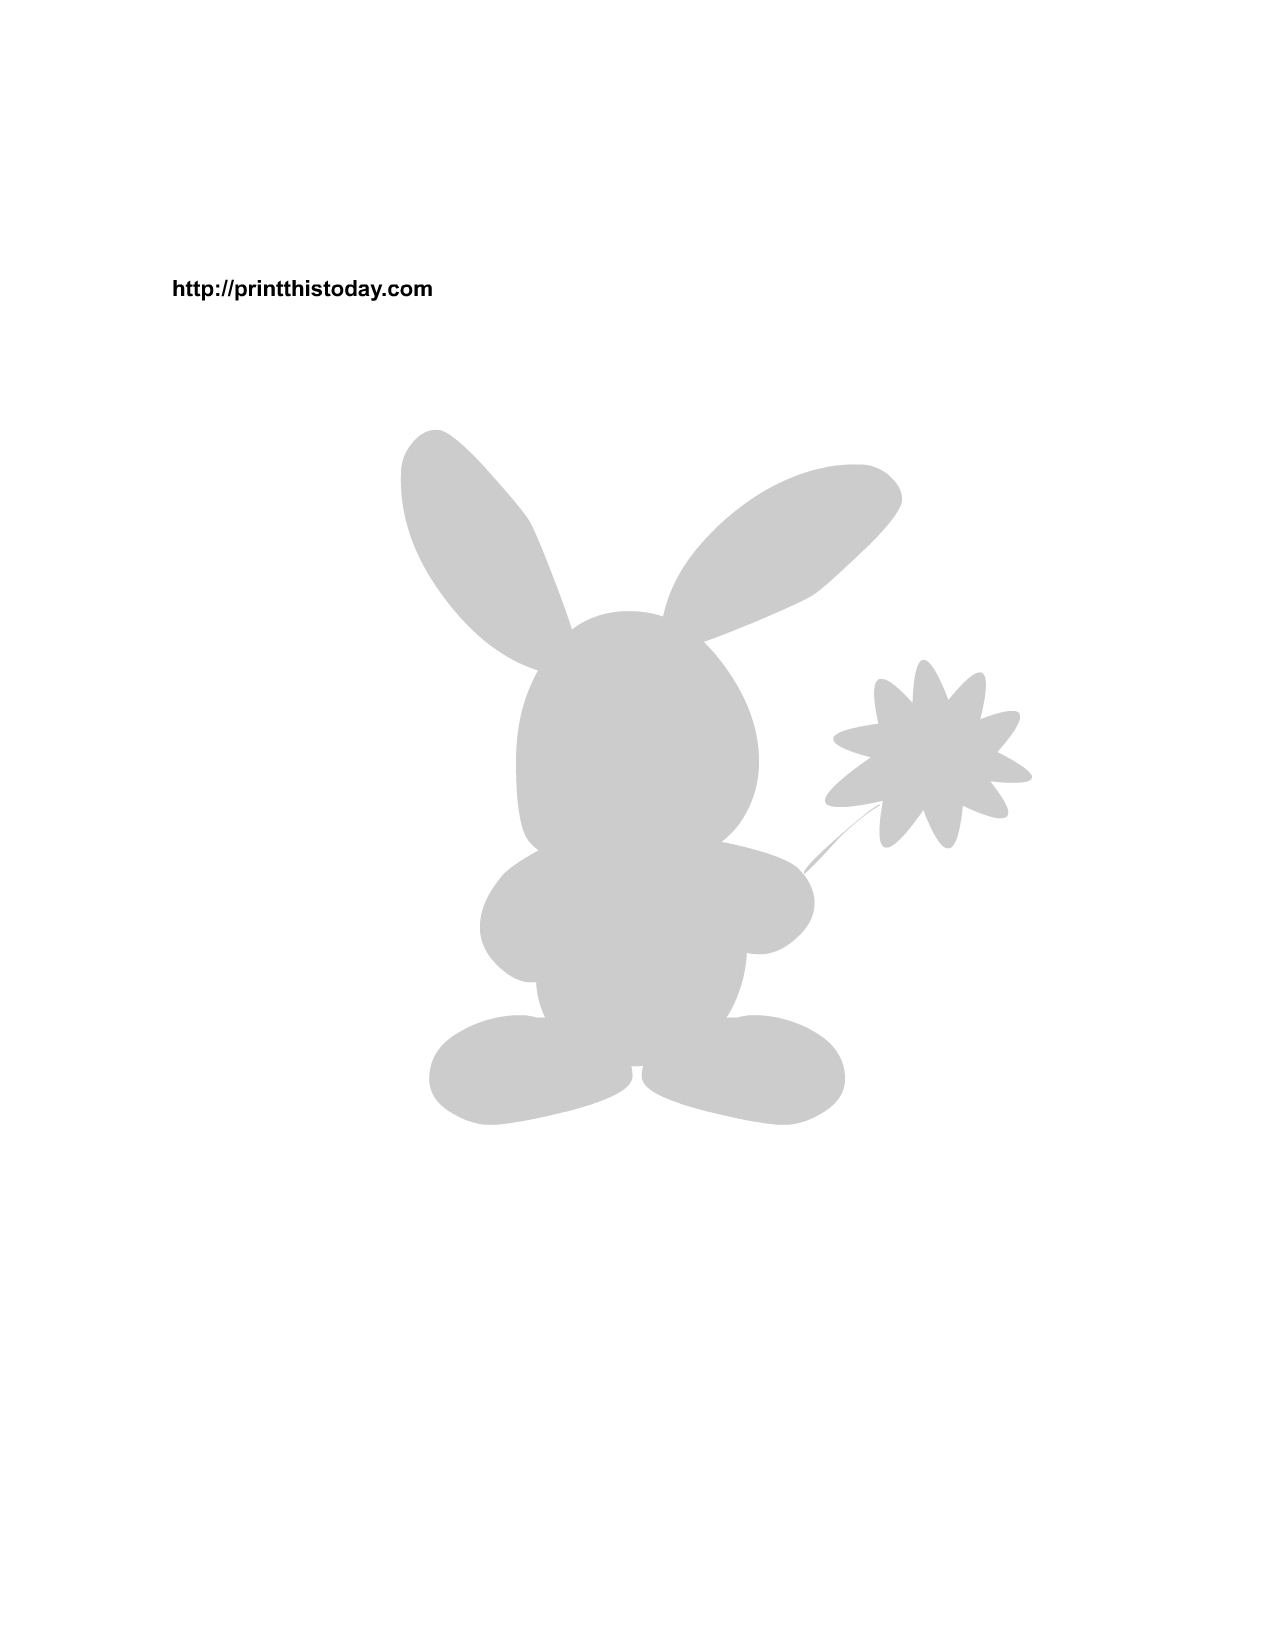 Free Printable Bunny Stencils - Free Printable Bunny Pictures